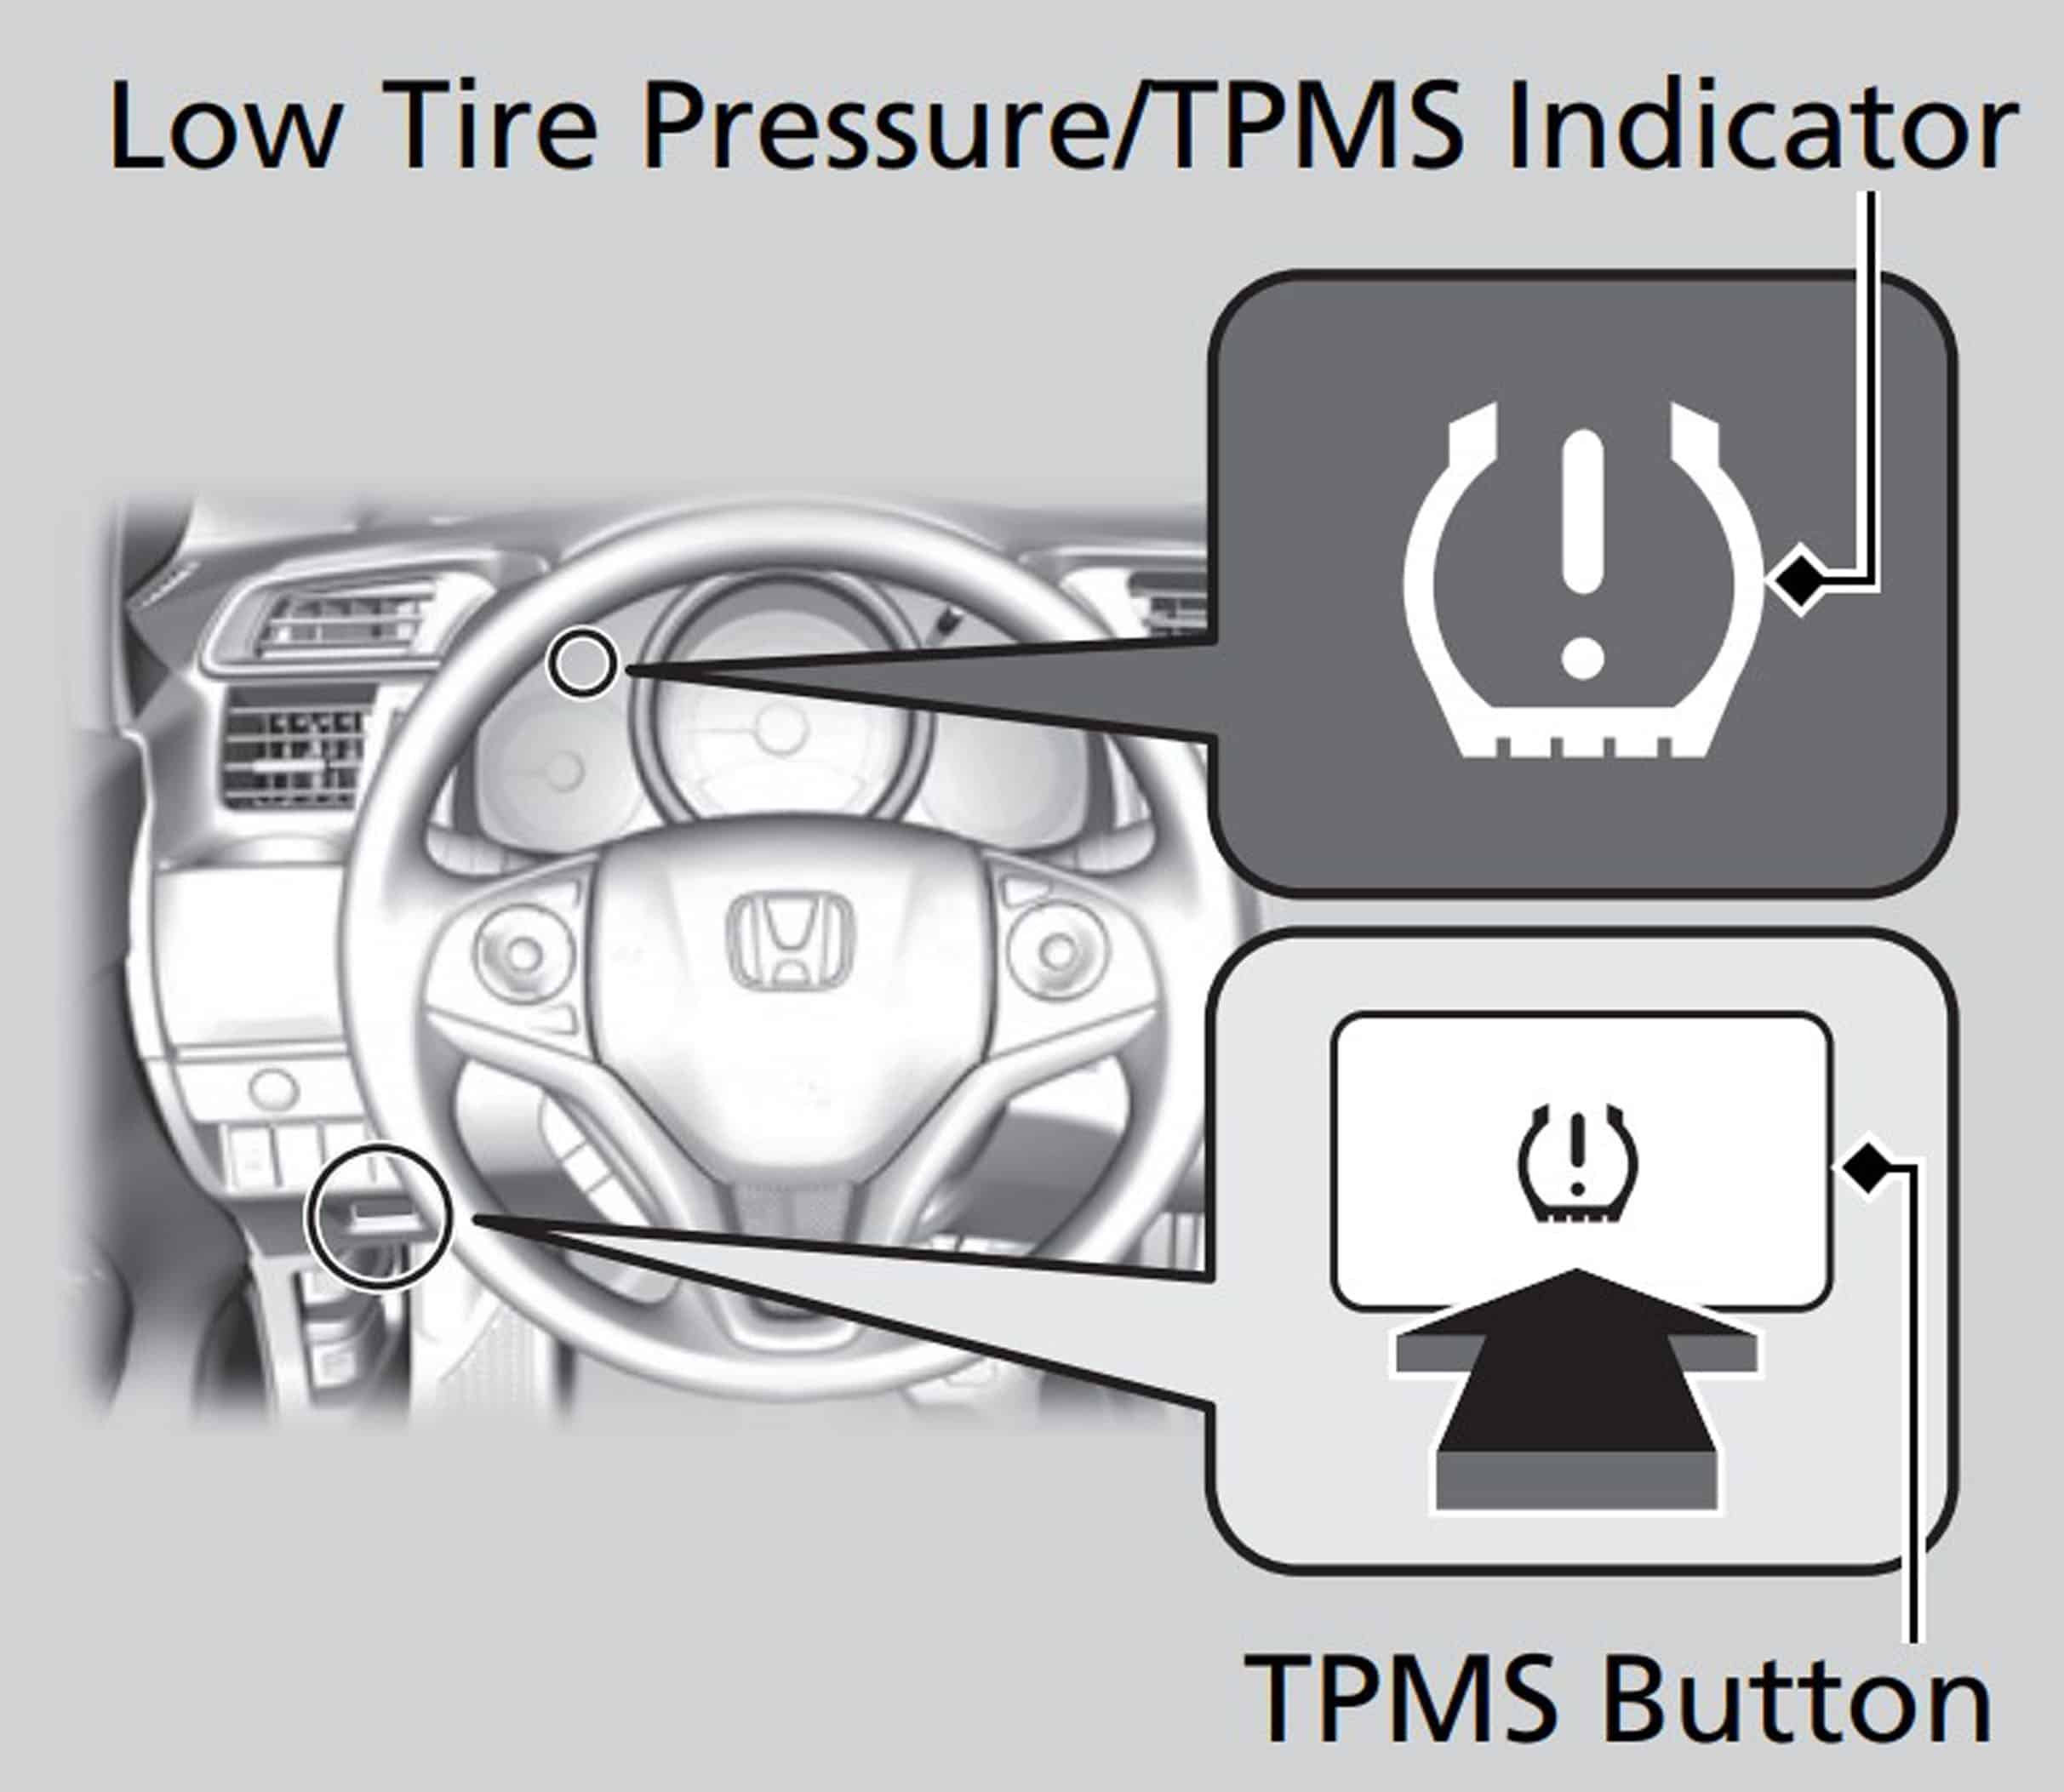 Dashboard graphic of Honda TPMS indicator light and TPMS button